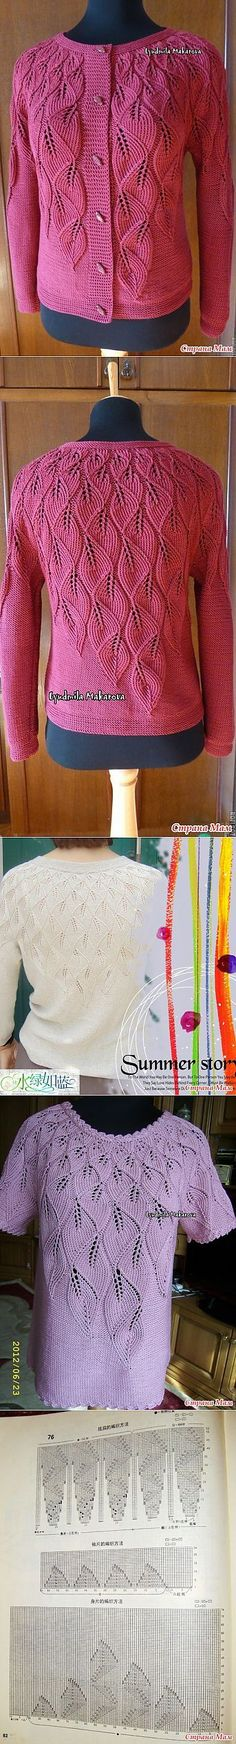 'Bright cherry'. Knit together online diary .: Group 'knit together OH | knitting | post